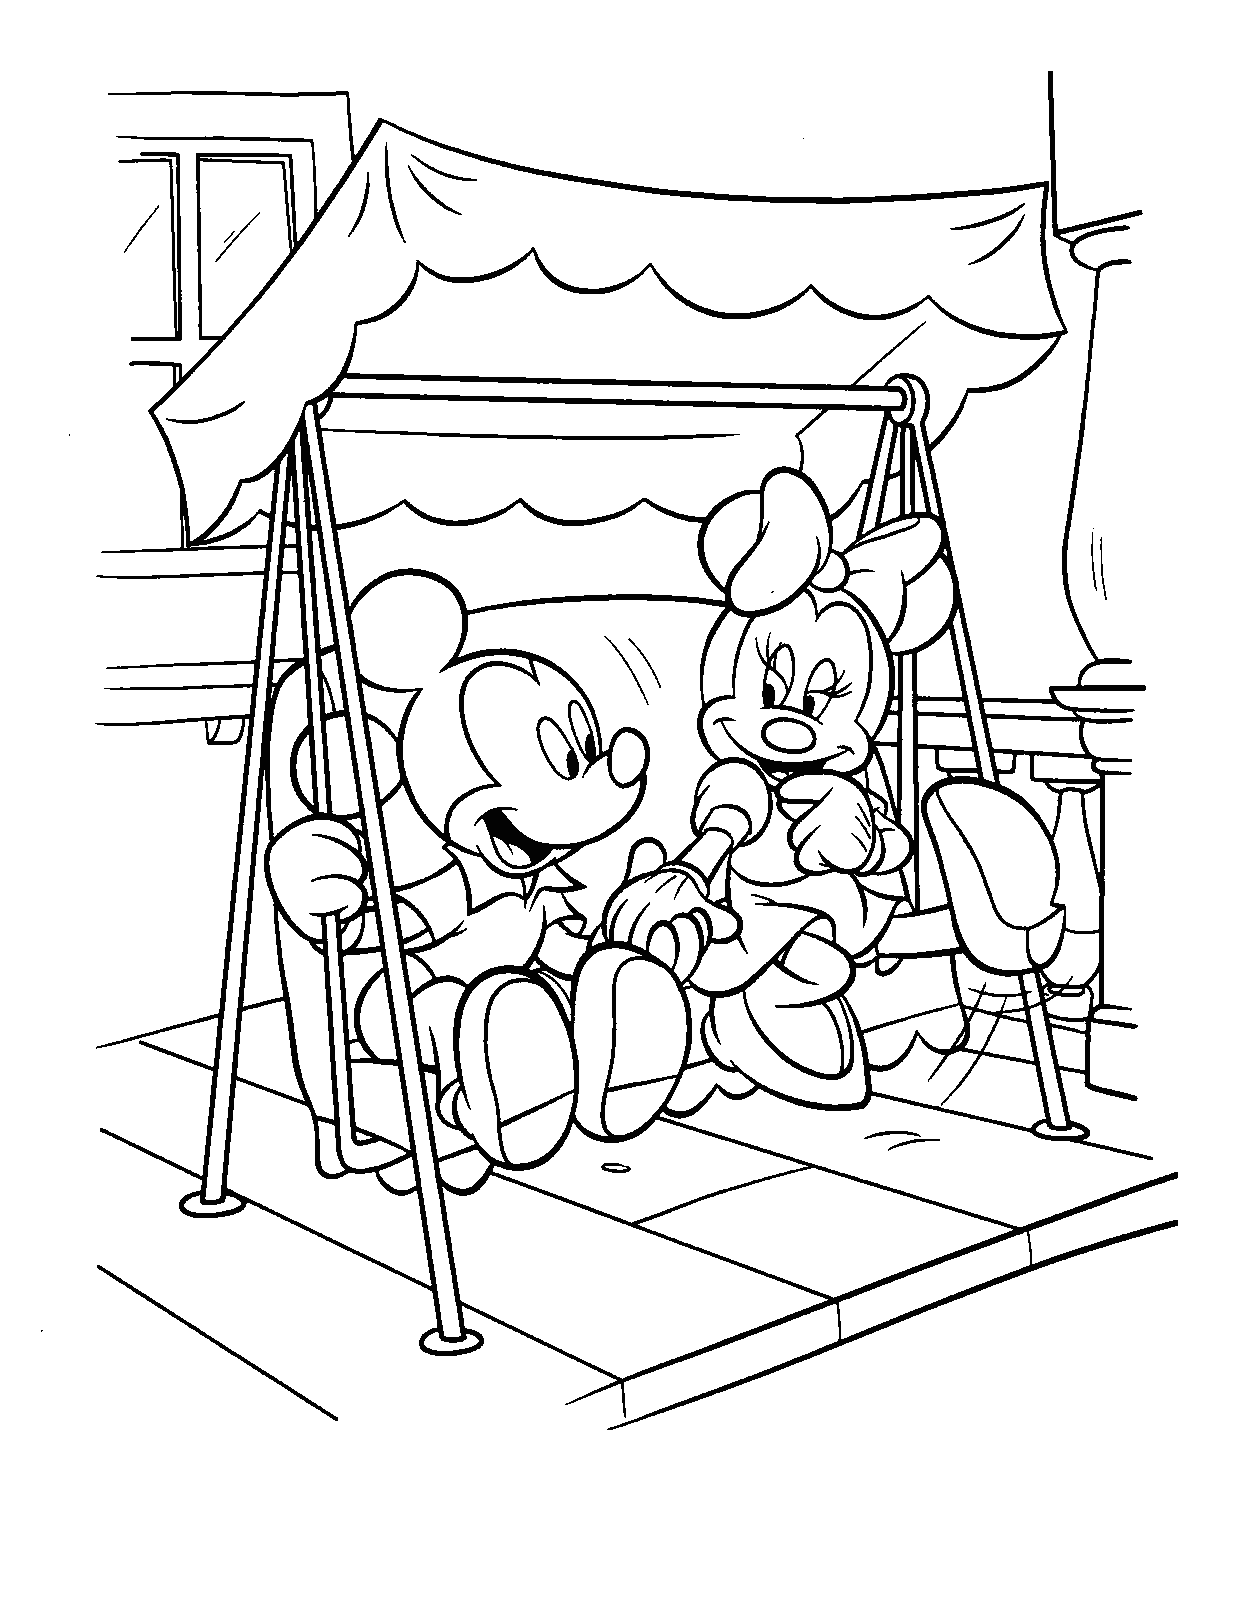 mickey and minnie mouse coloring pages minnie mouse coloring pages to print for free coloring mickey mouse minnie and pages